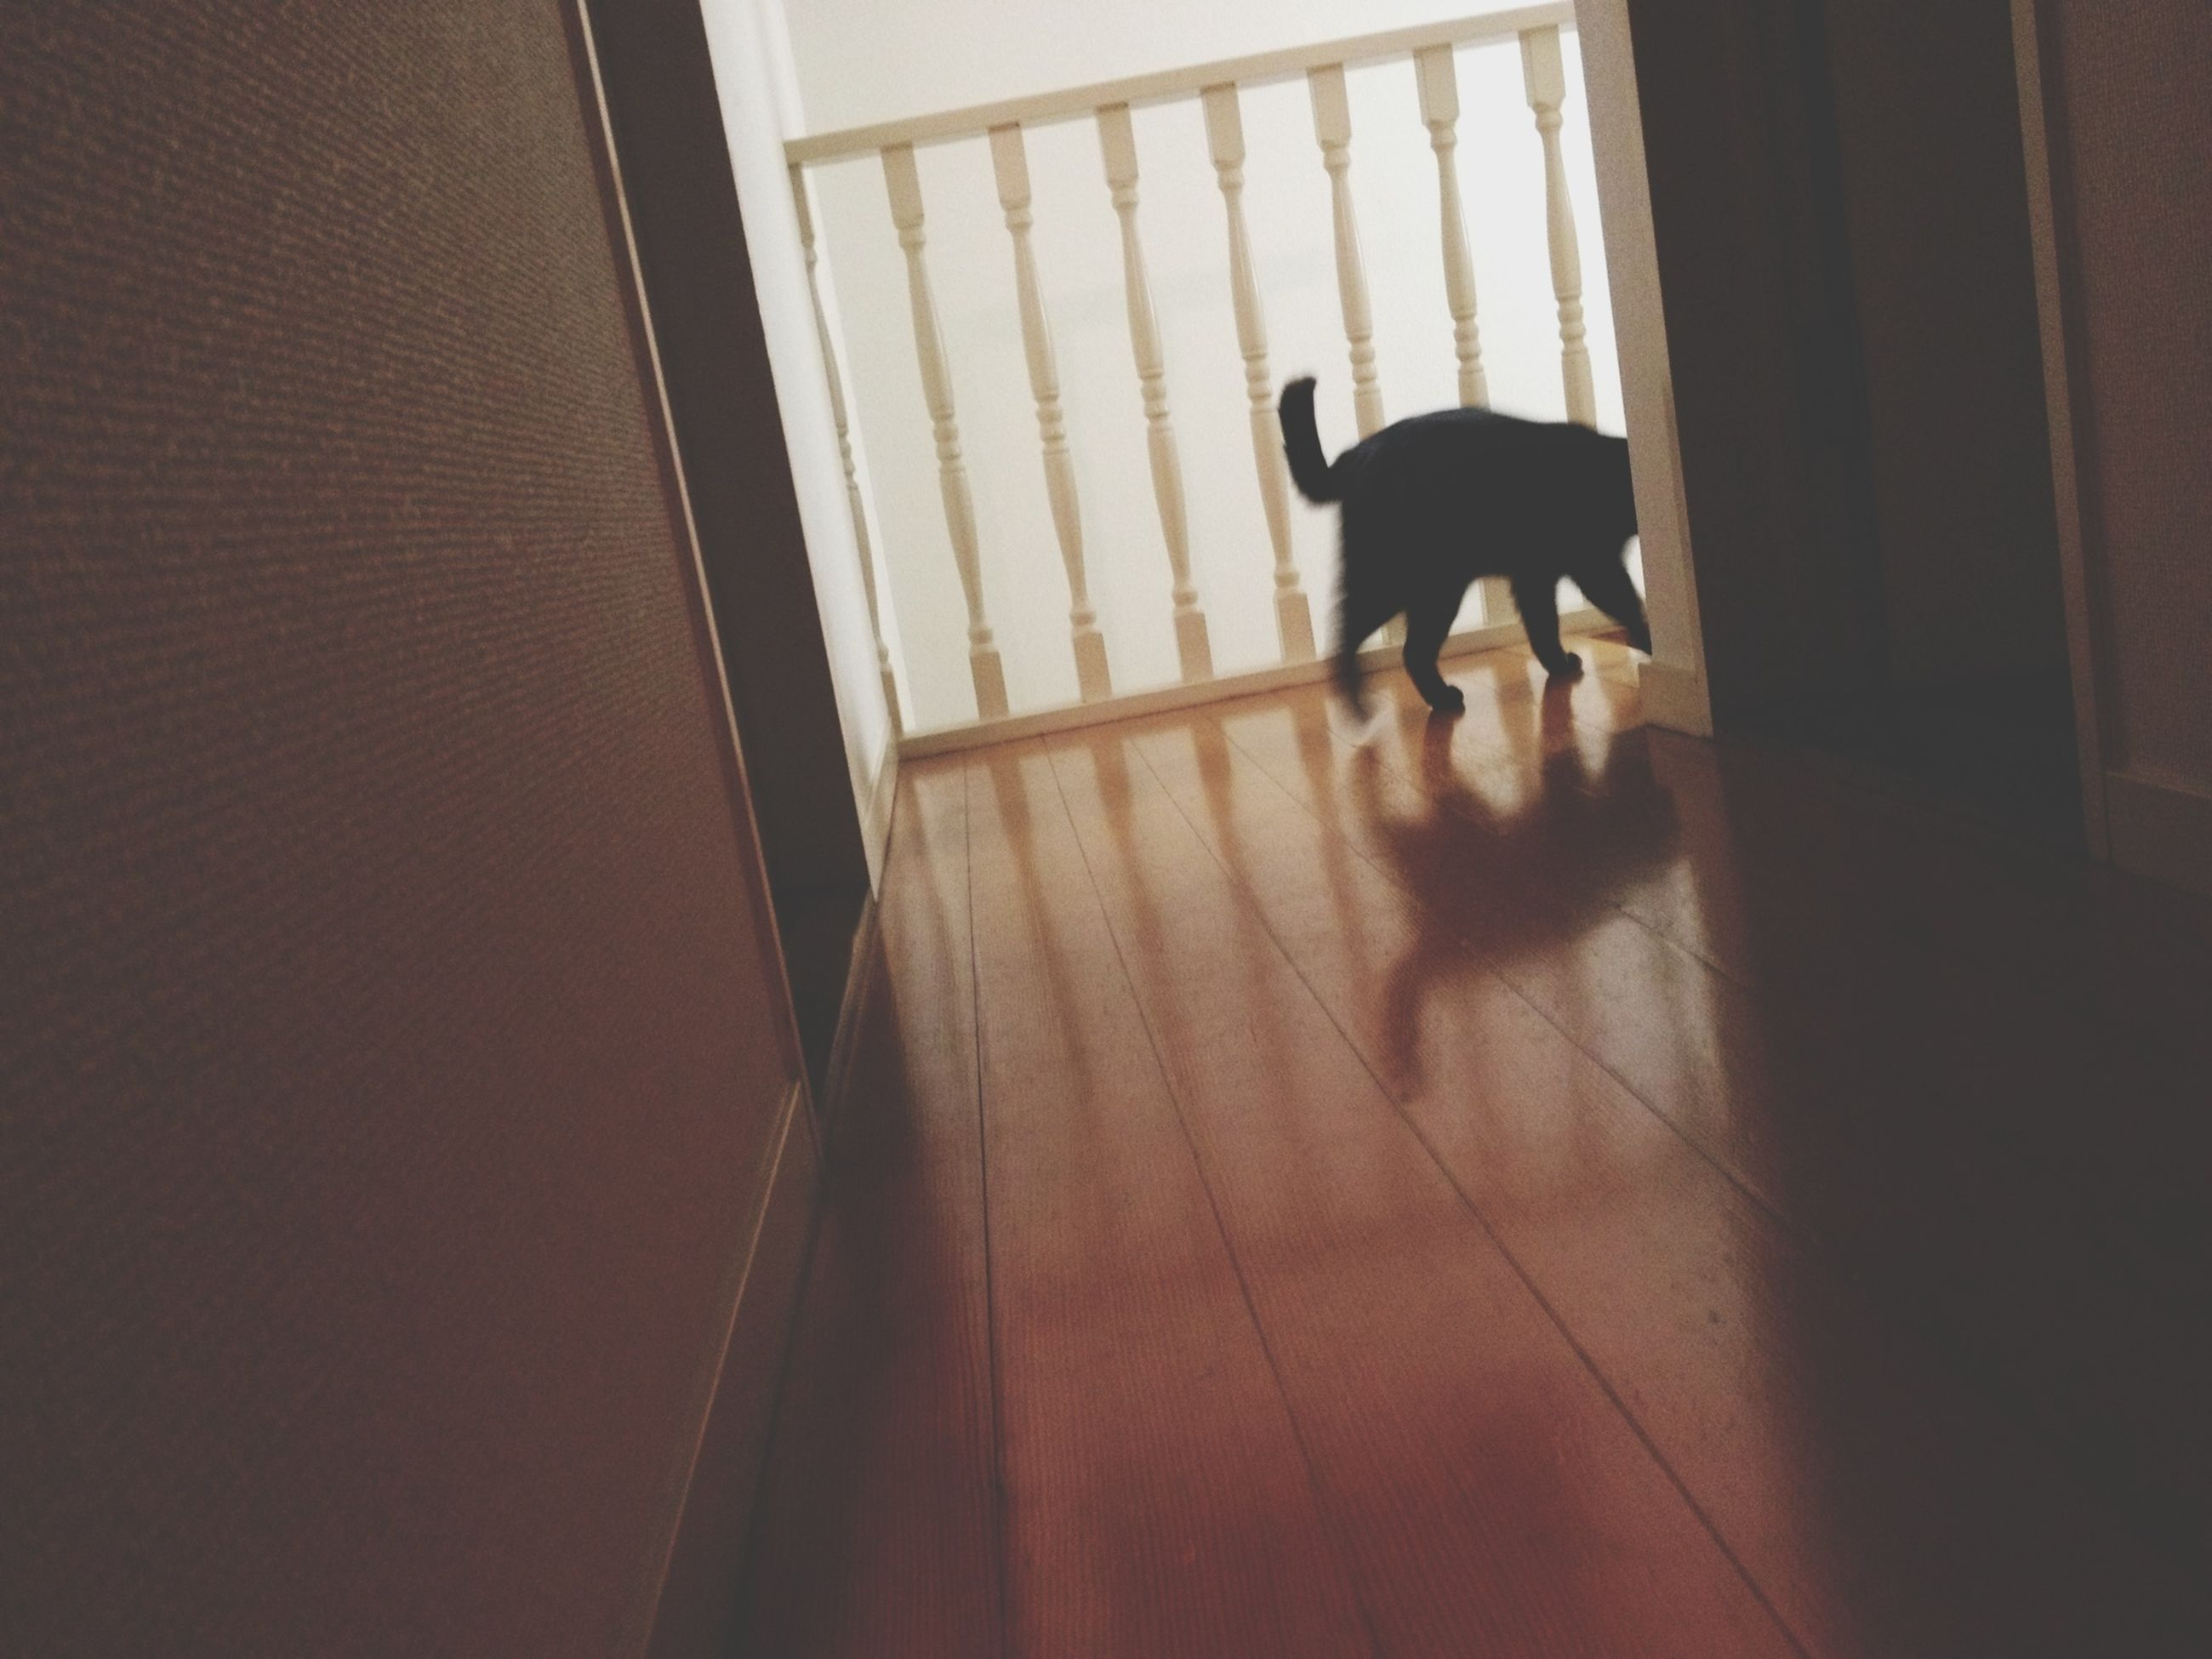 indoors, window, architecture, built structure, pets, home interior, flooring, full length, shadow, domestic animals, tiled floor, one animal, door, walking, animal themes, dog, wall - building feature, sunlight